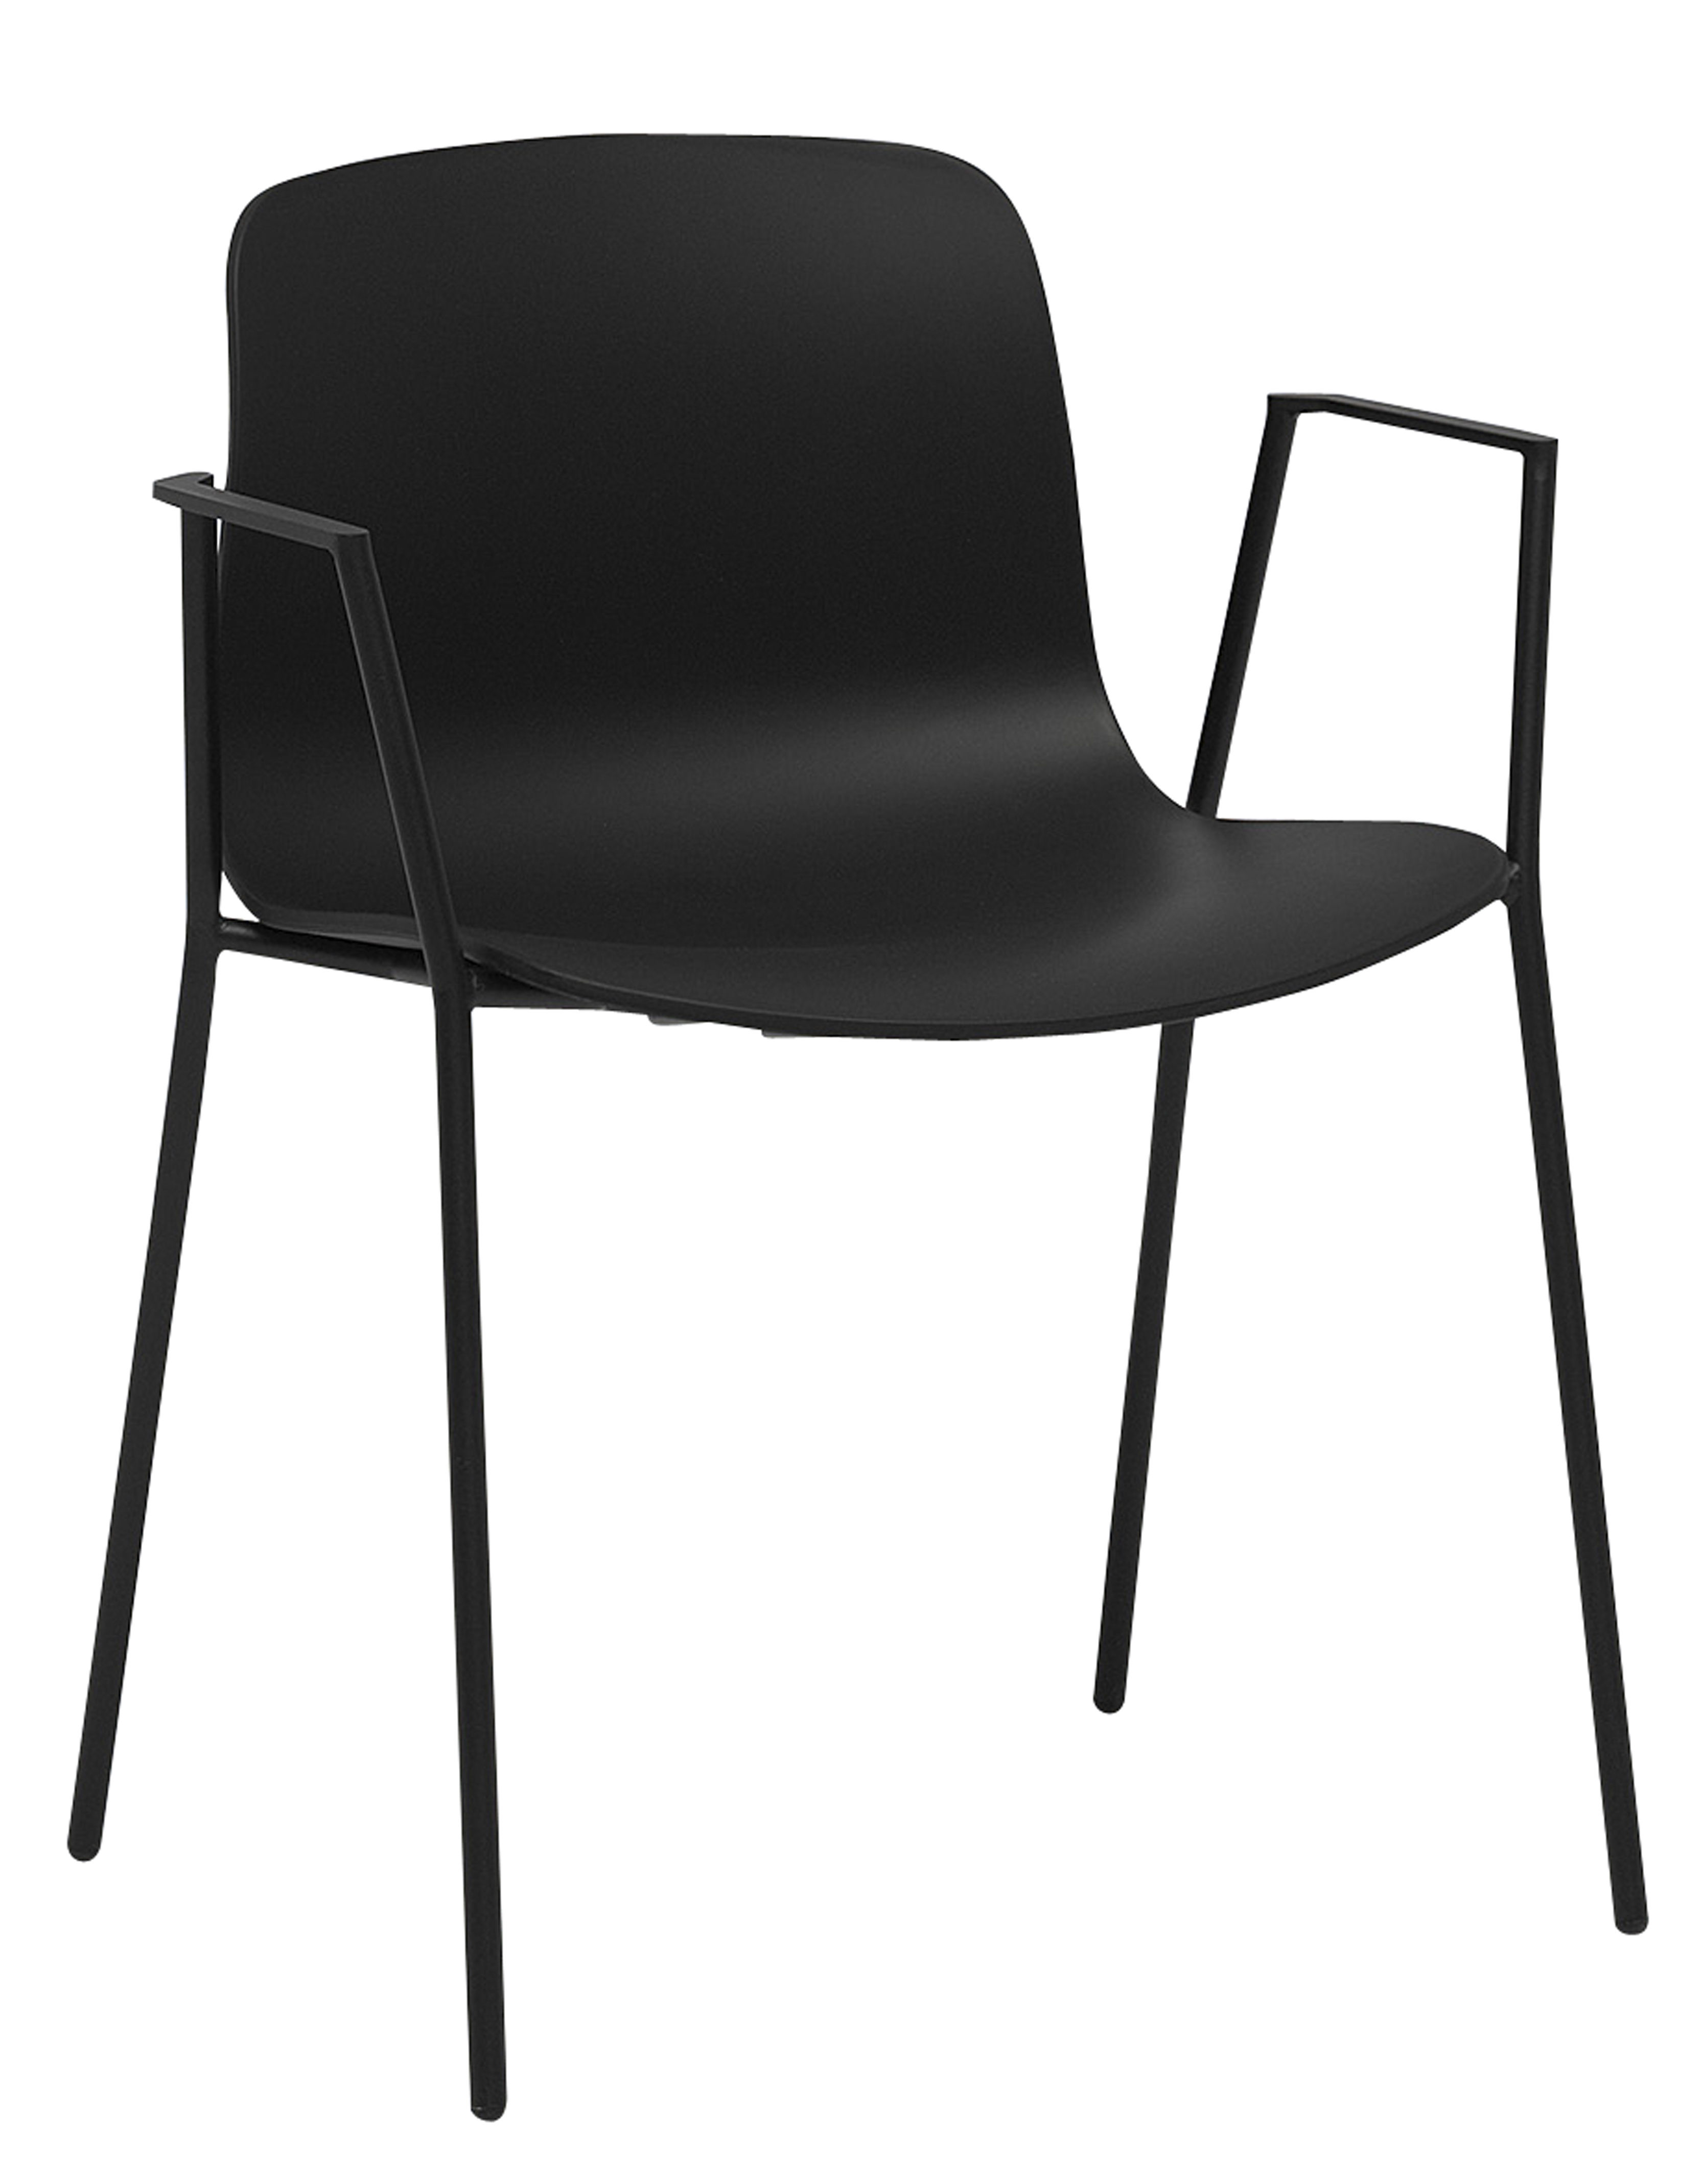 About A Chair Aac18 Stacking Chair With Armrests 4